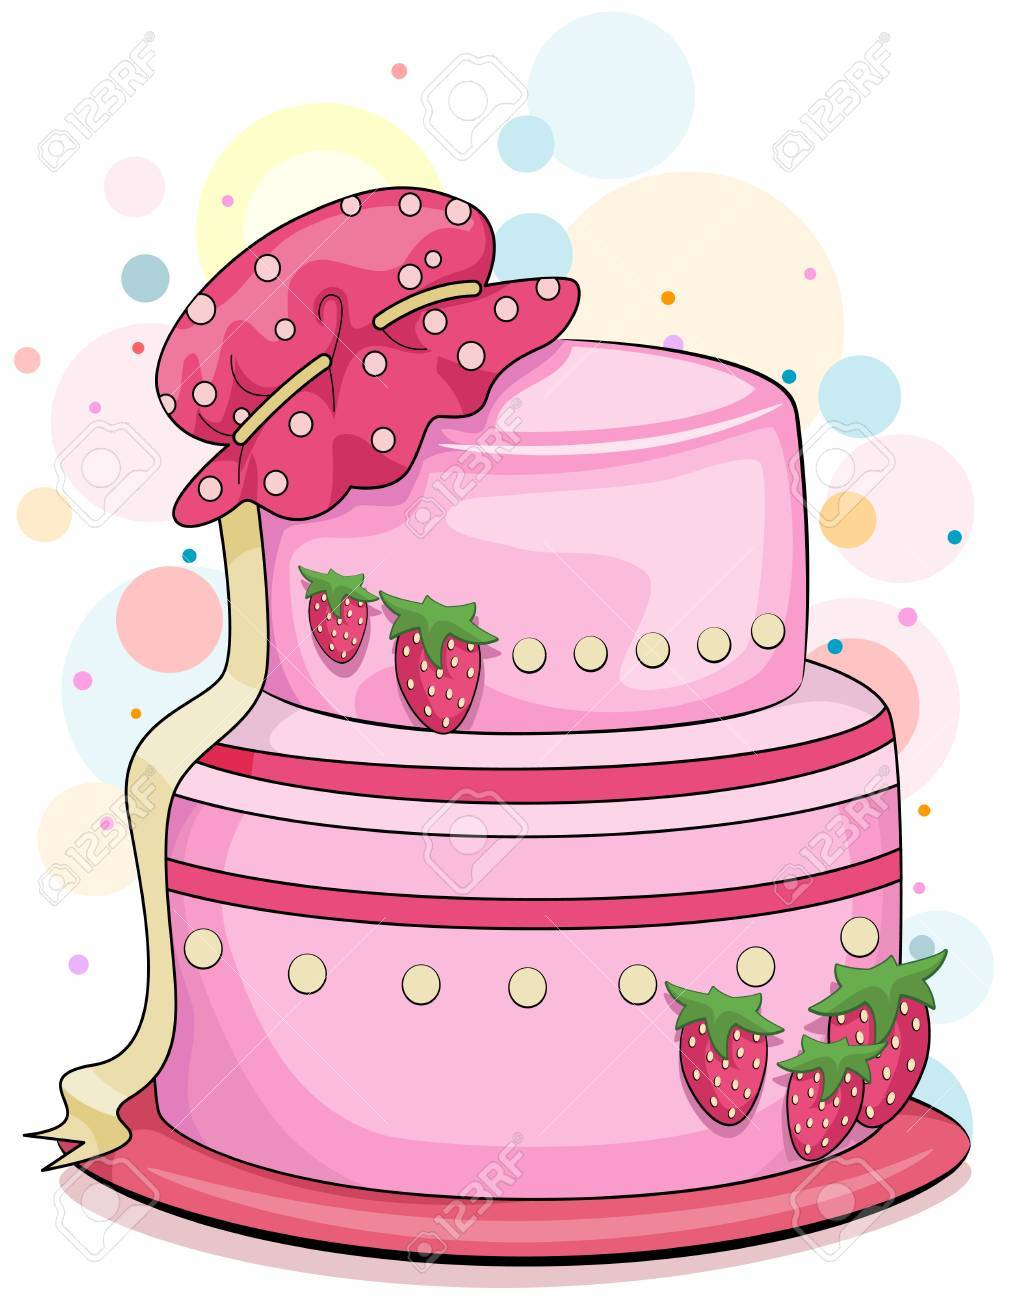 Illustration of a Strawberry Cake with a Baby Bonnet on Top Stock Photo - 8550054